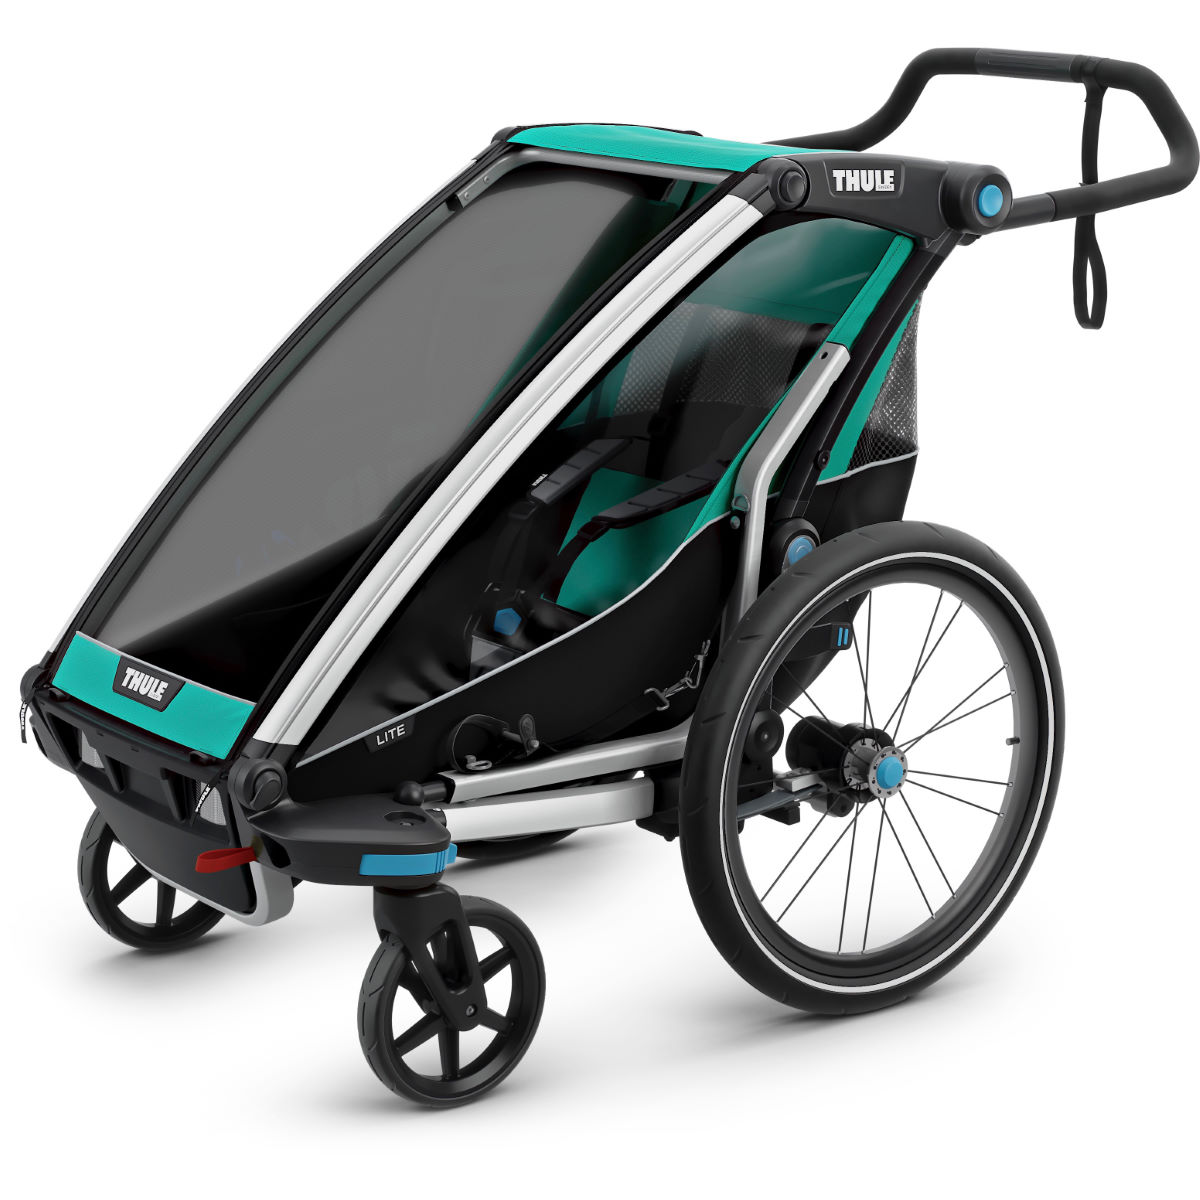 Thule Chariot Lite 1 Child Trailer - Remolques para niños